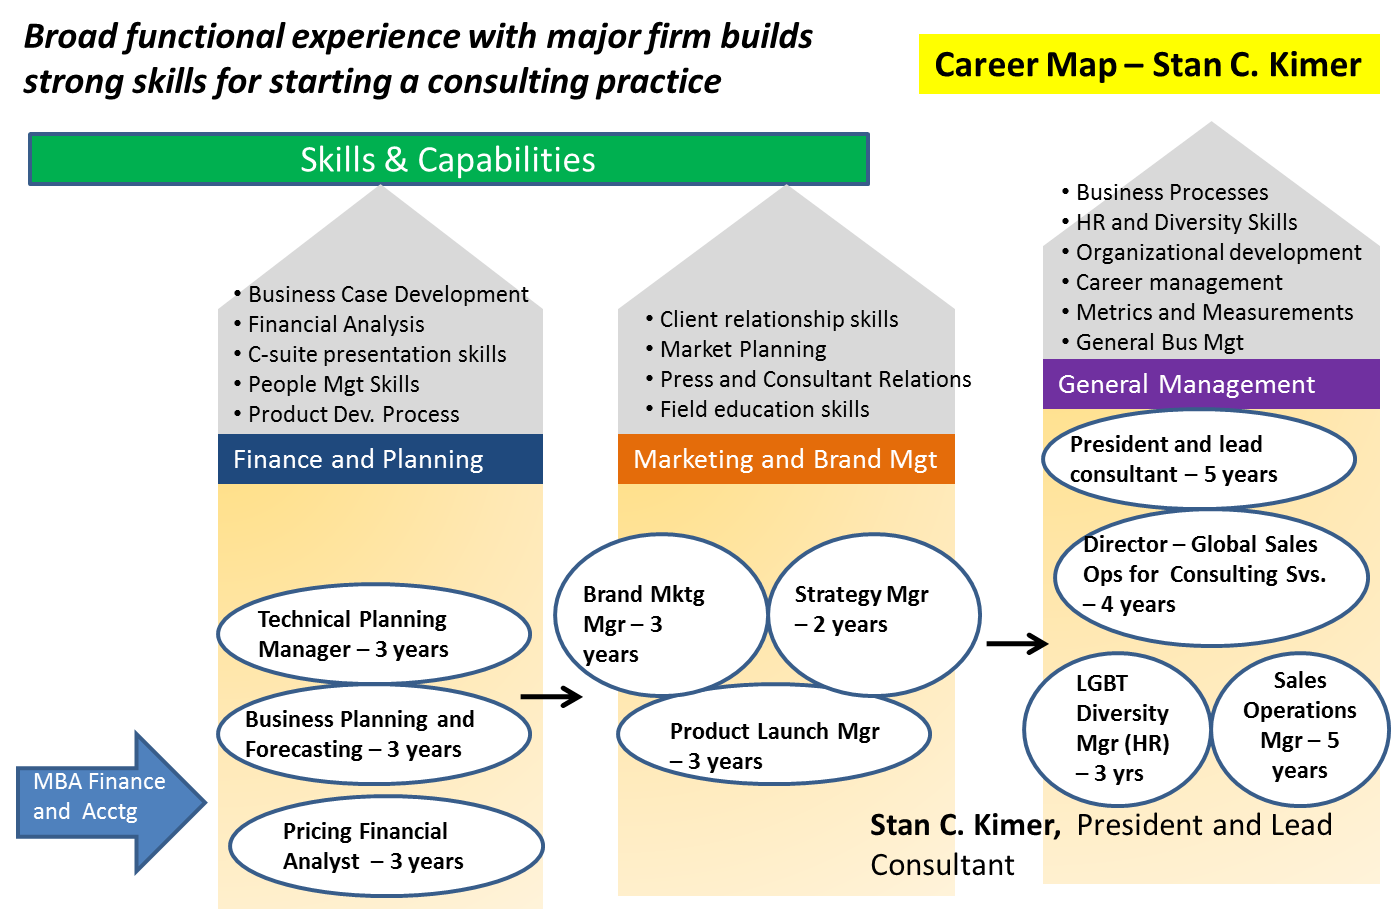 Career Mapping – An Innovative Solution to Engaging Diverse Employees